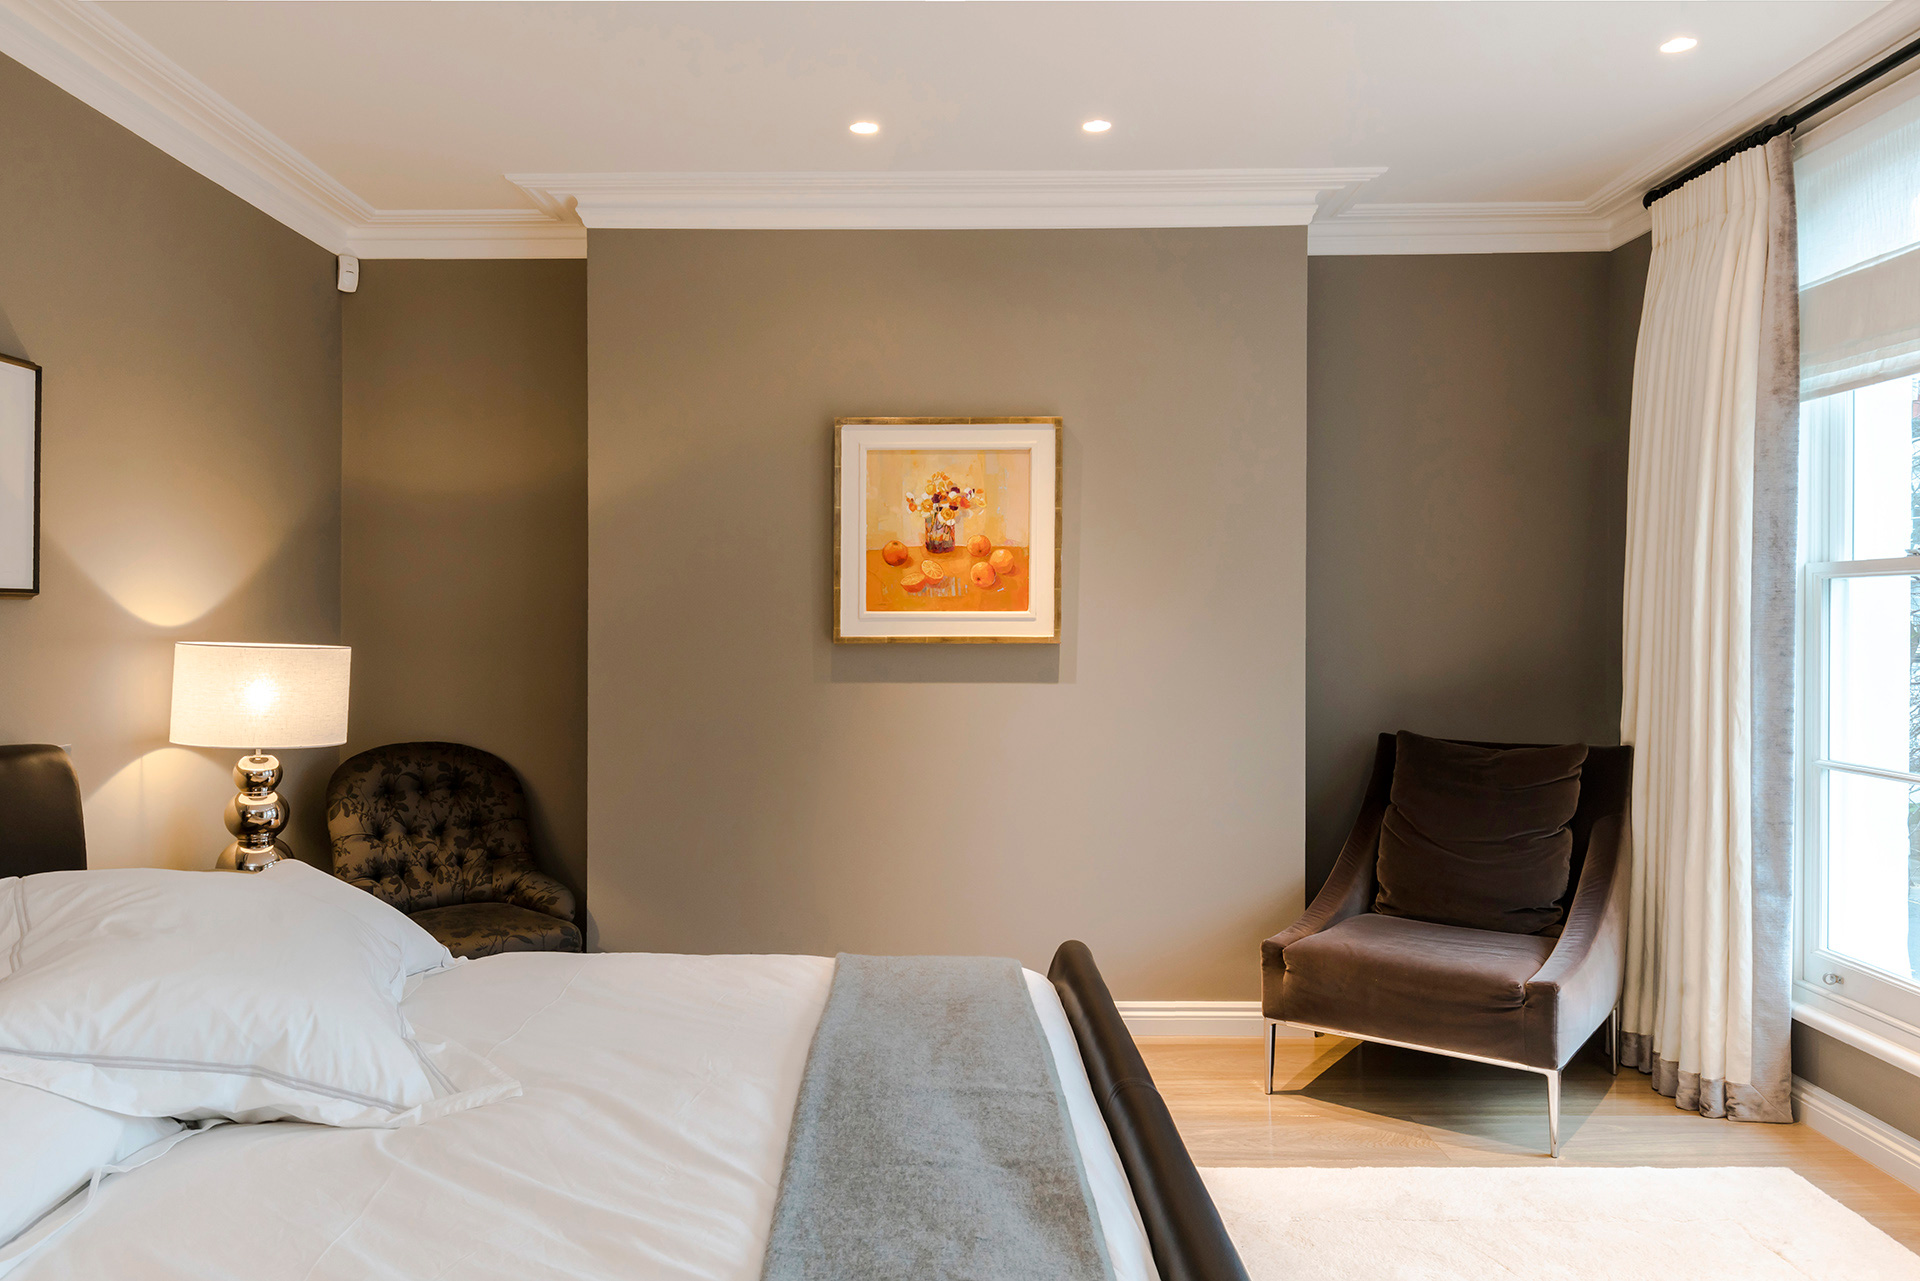 Studio 29 residential architects refurbishment kensington 6